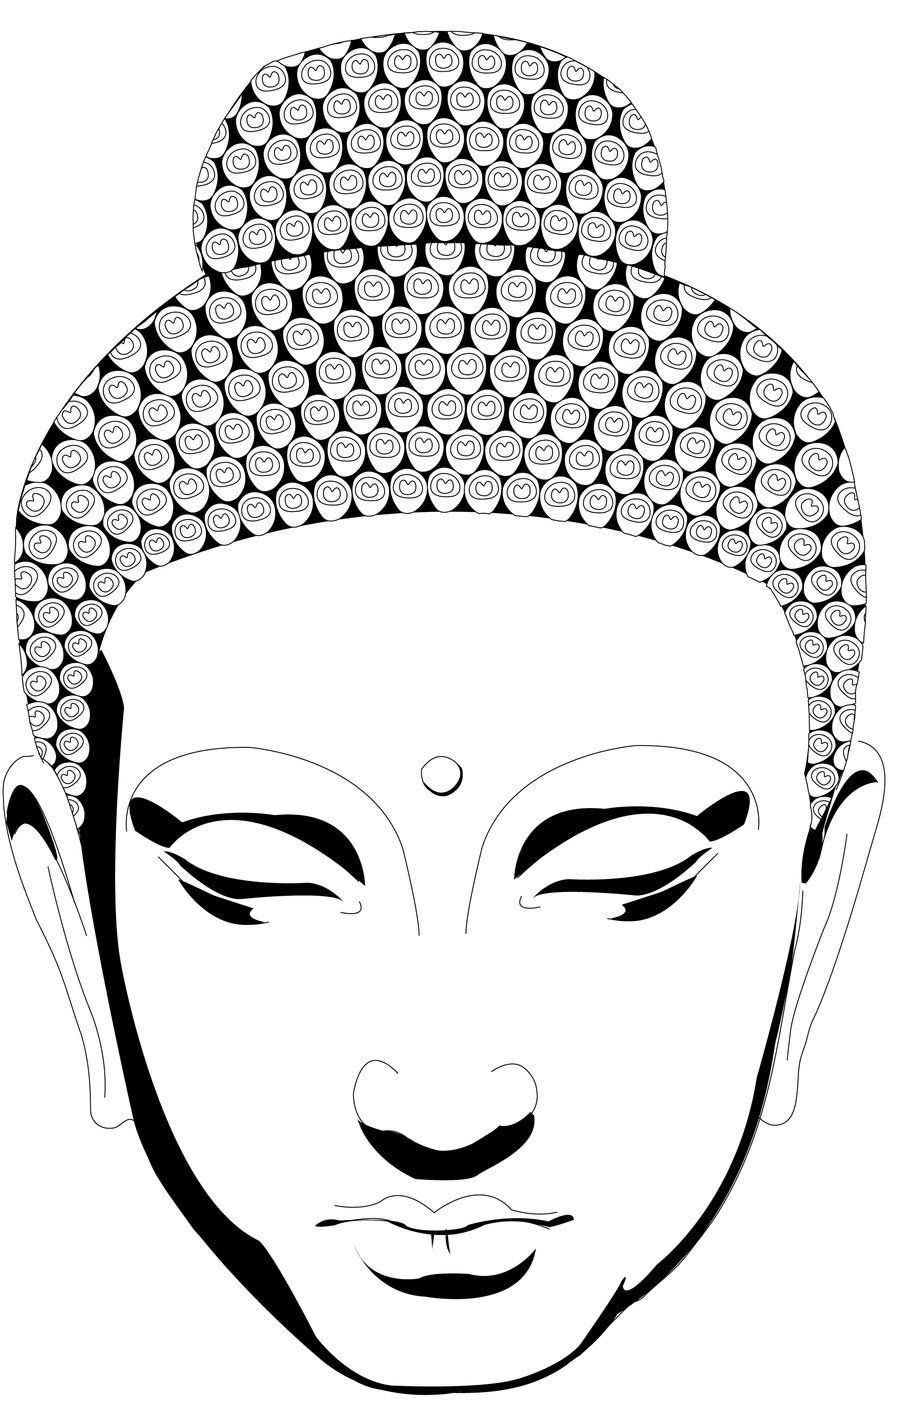 Buddha face coloring pages go back images for simple for Easy detailed drawings